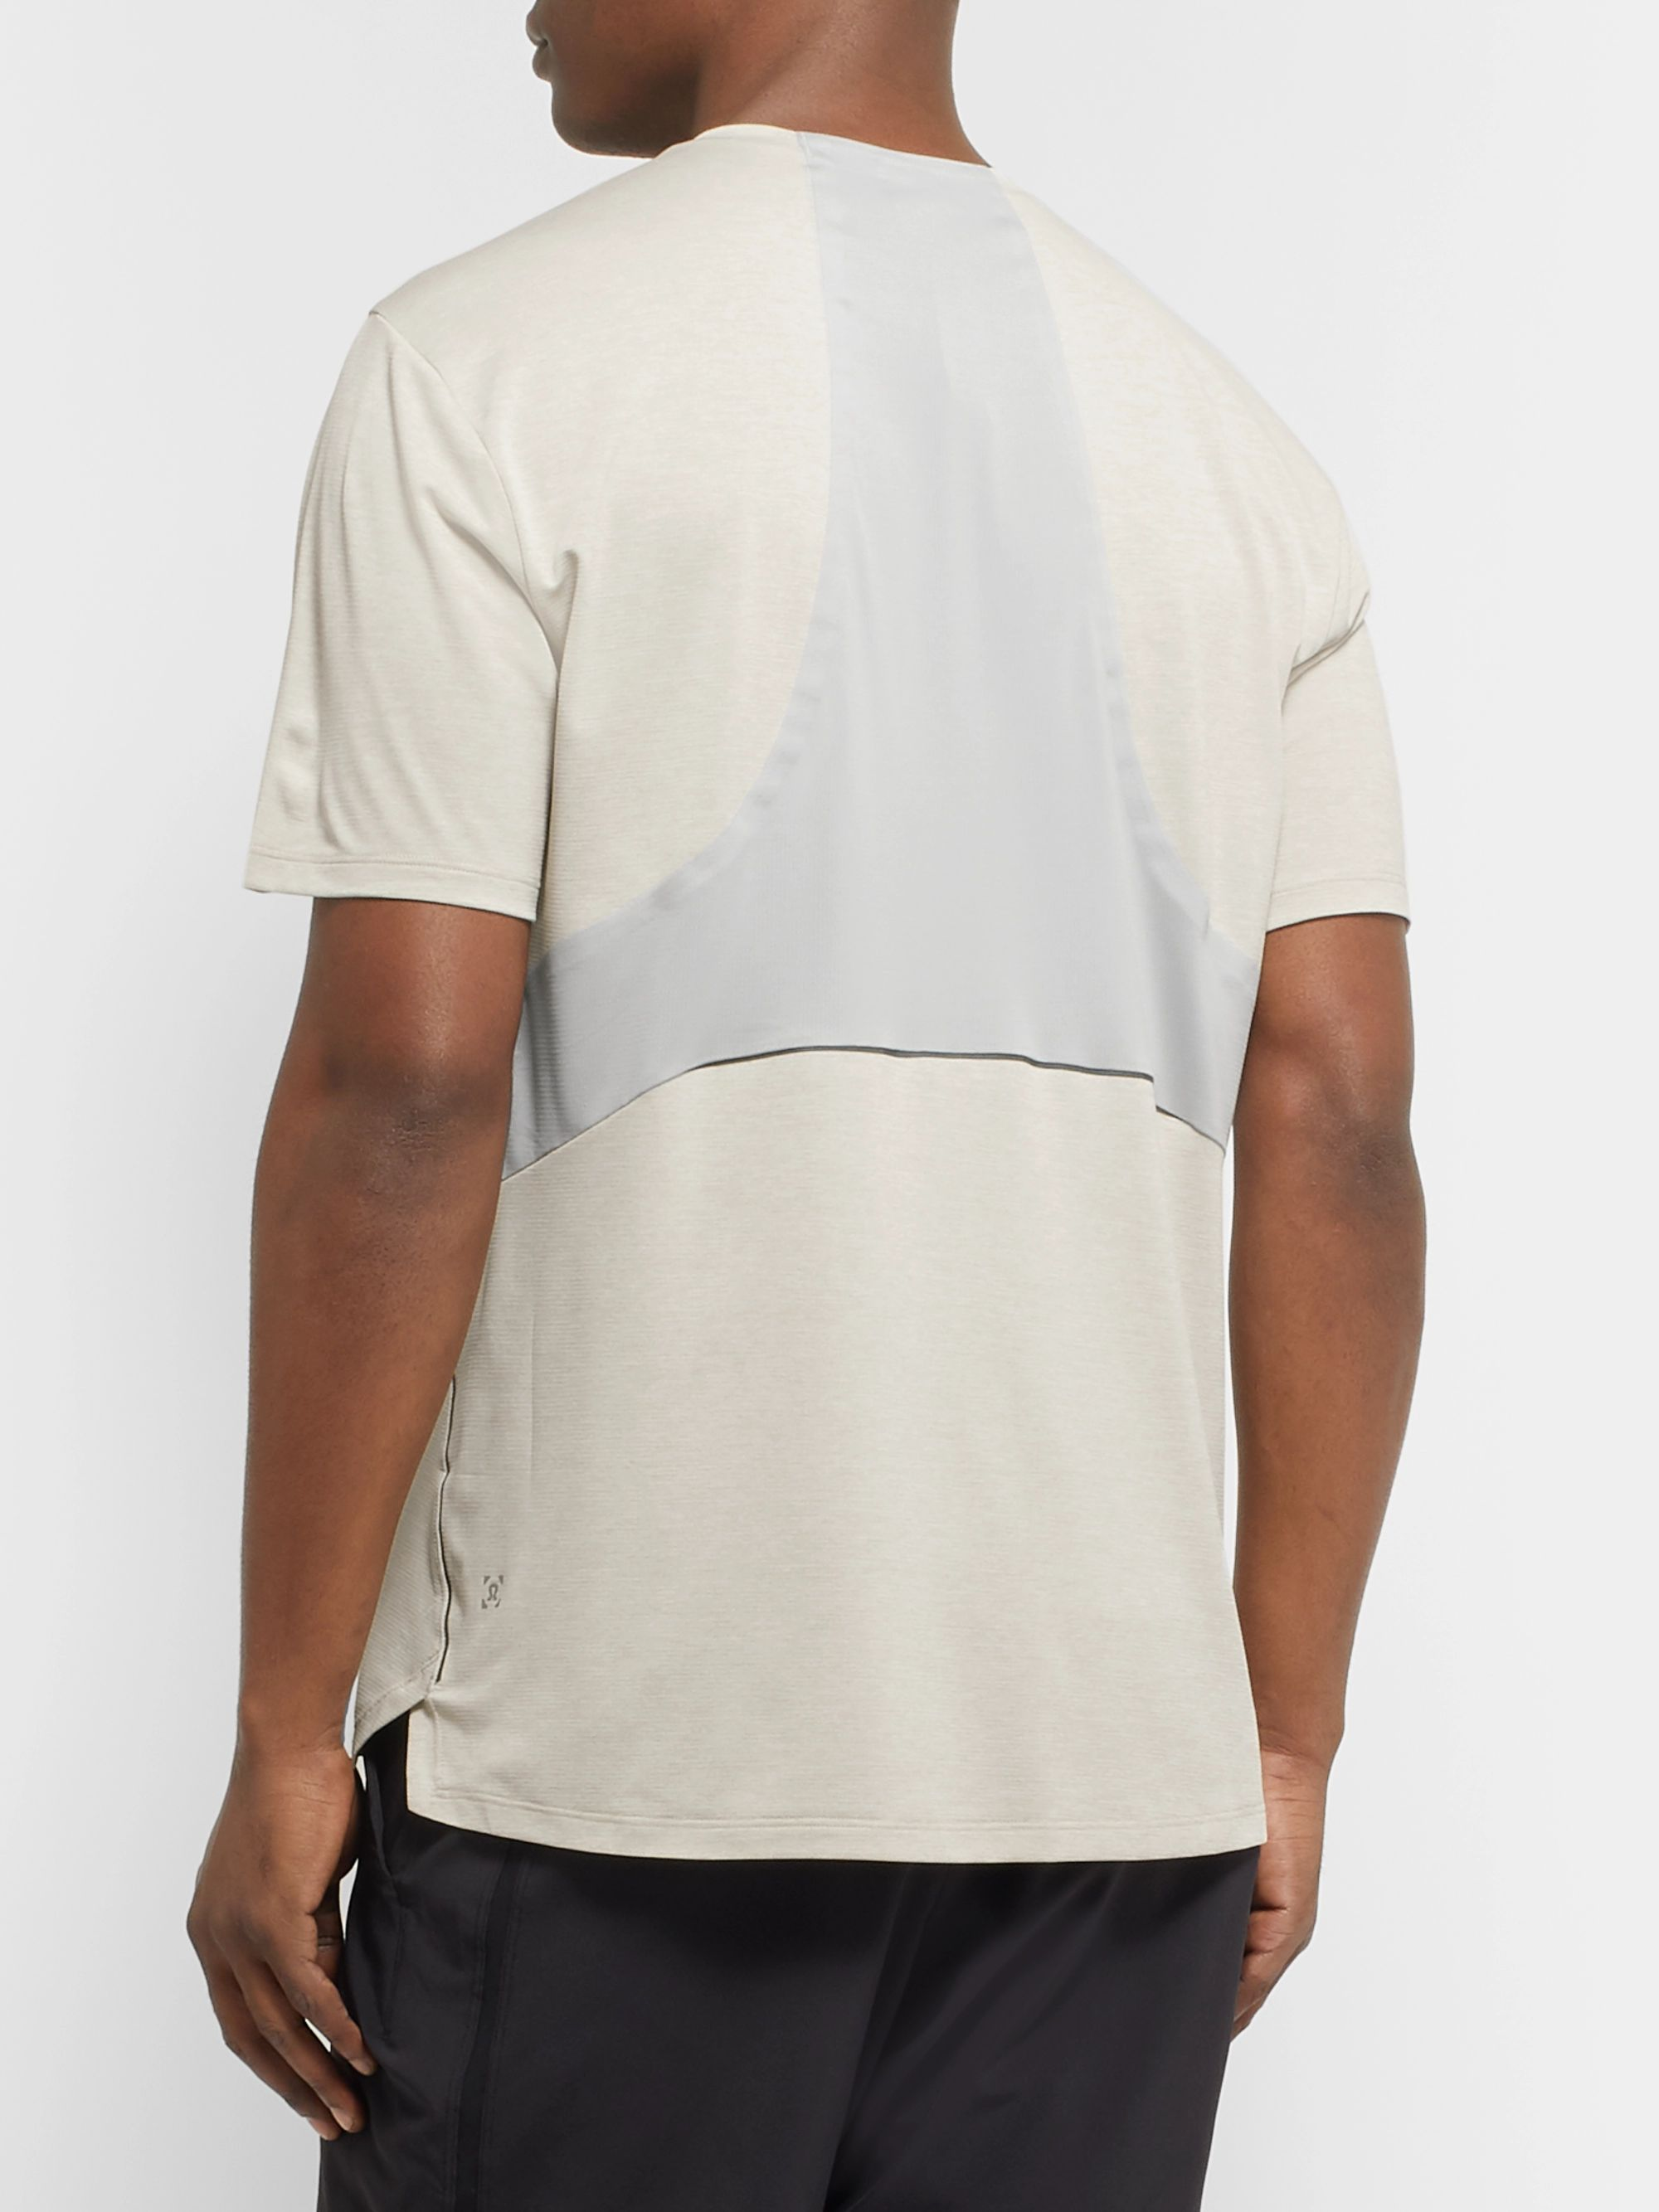 Lululemon Fast and Free Breathe Light Mesh T-Shirt